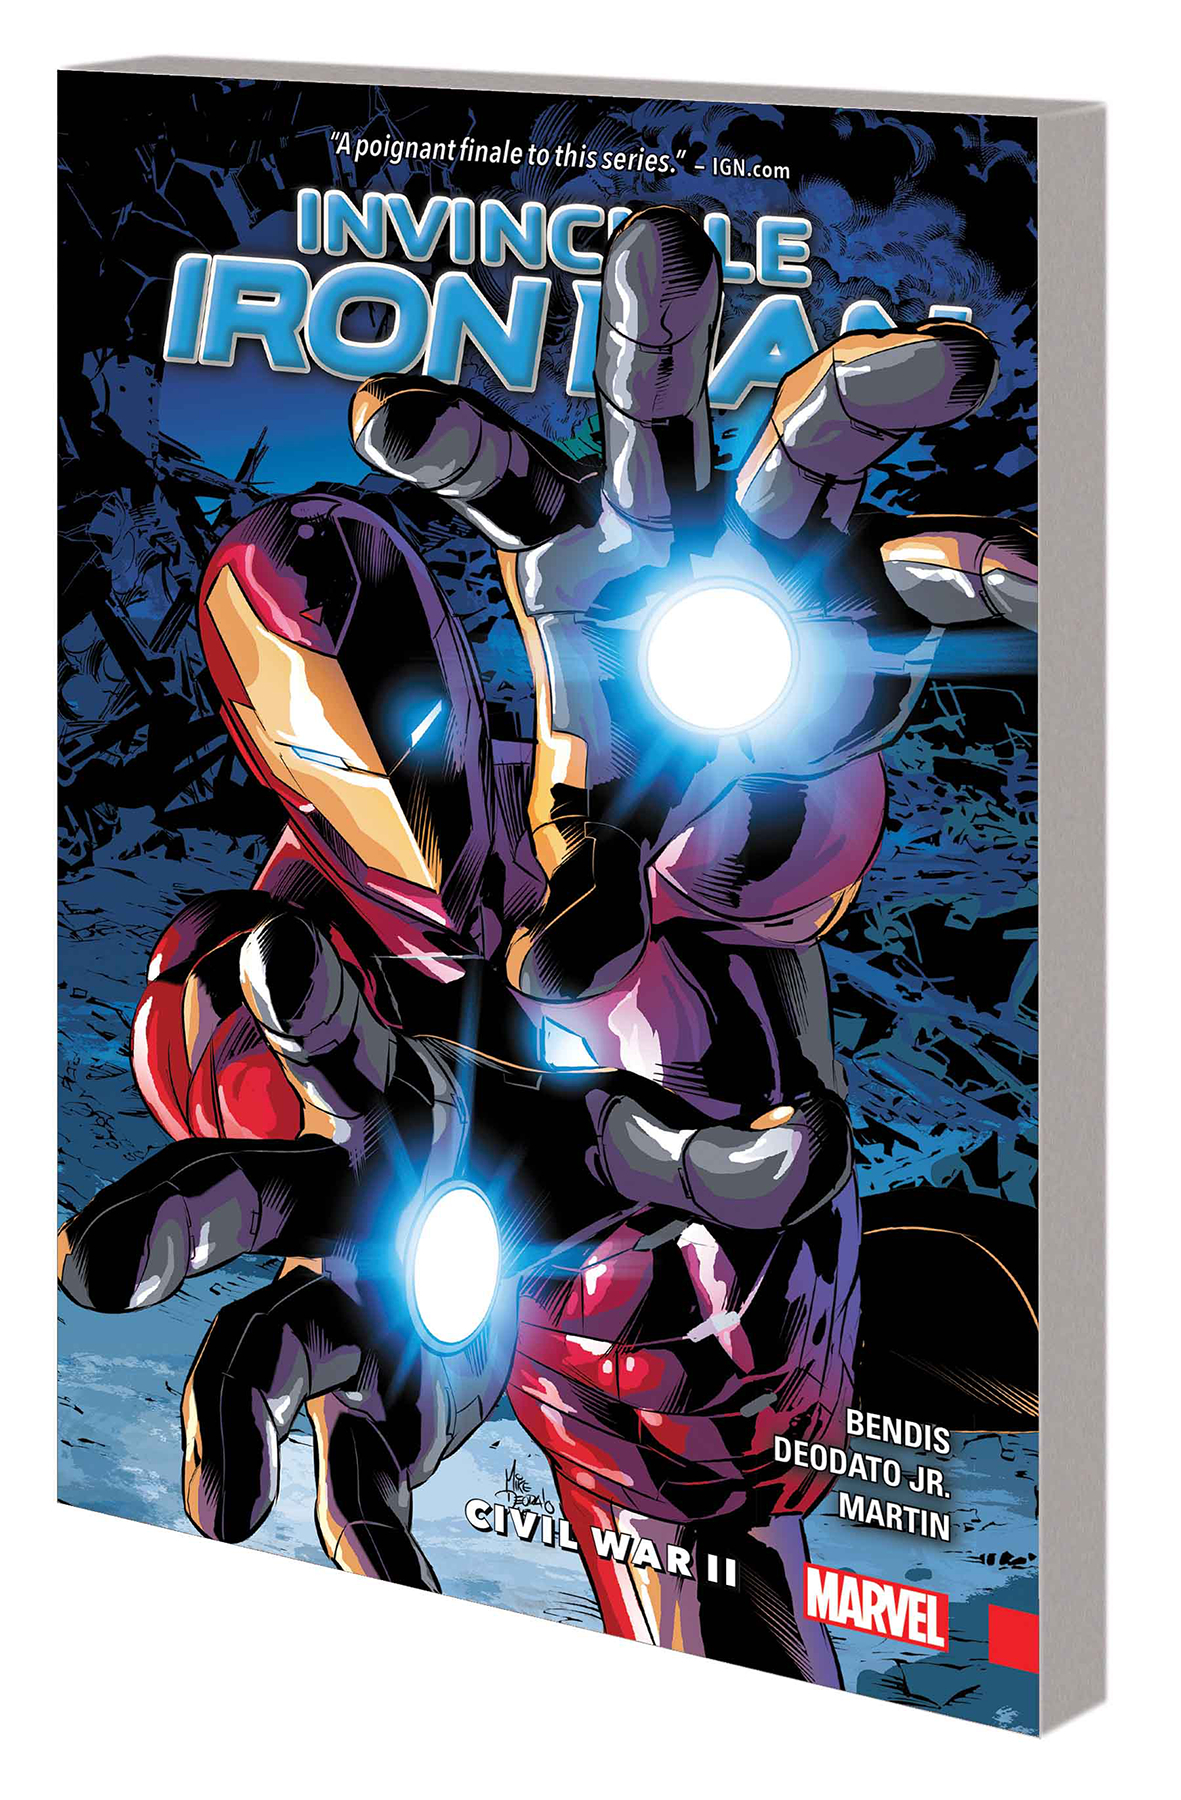 INVINCIBLE IRON MAN TP VOL 03 CIVIL WAR II